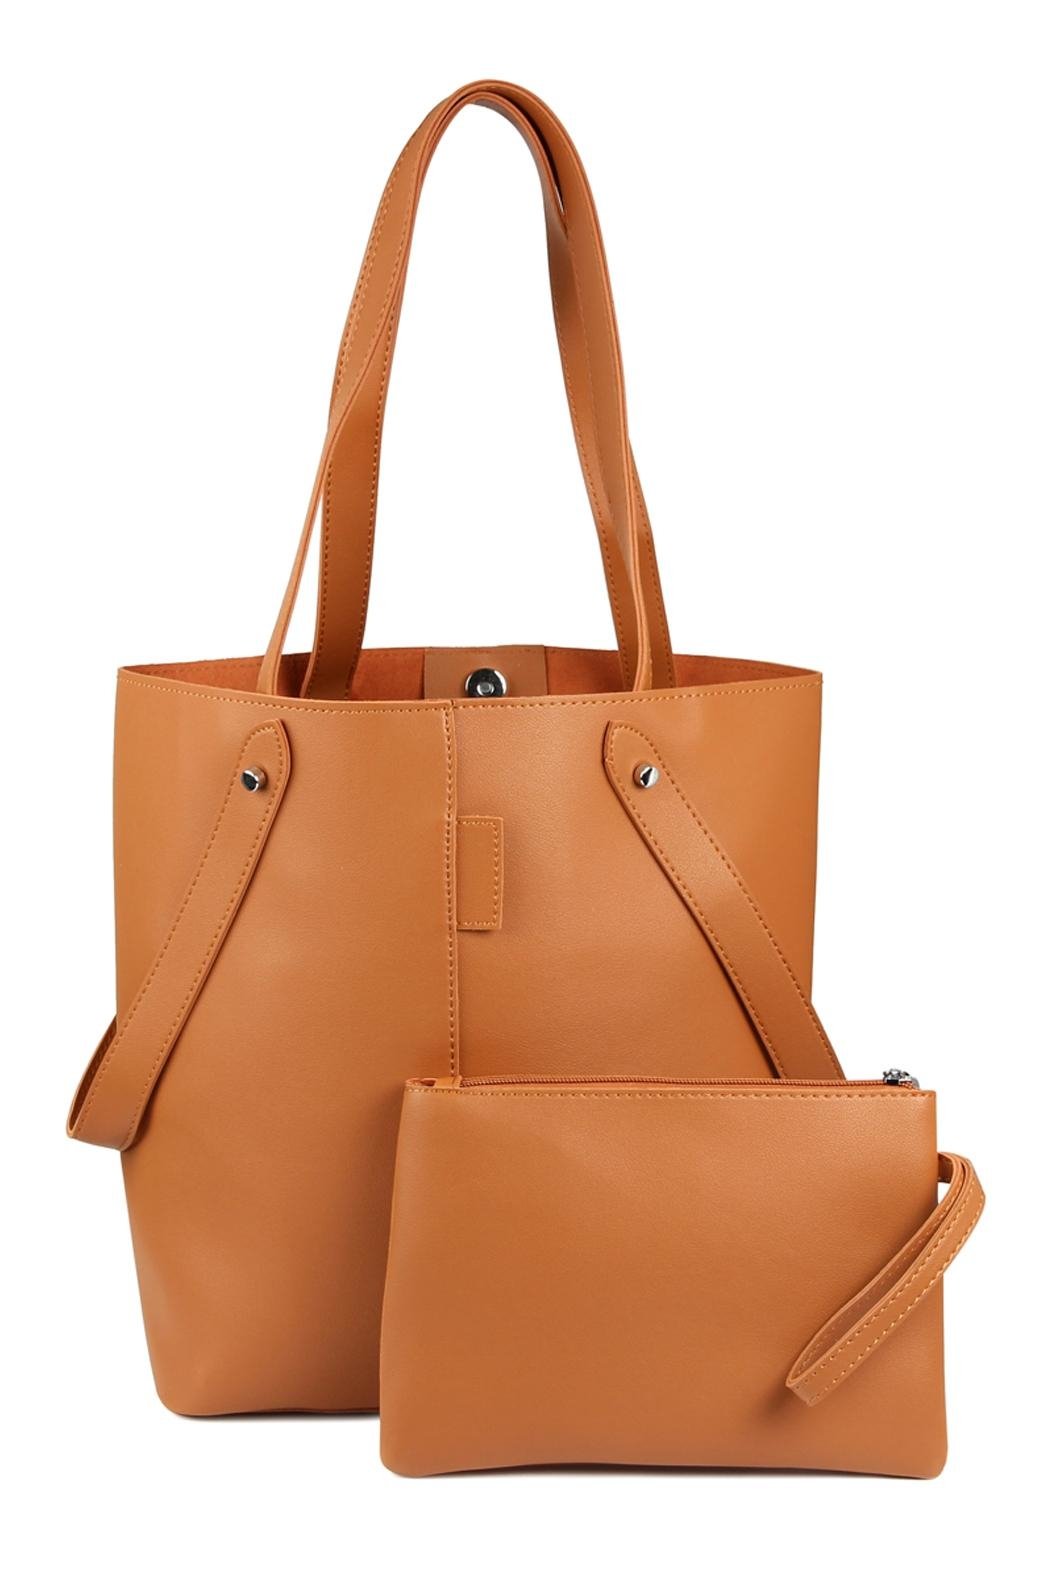 Riah Fashion 2 Way Strap Handle Tote Leather Bag With Pouch Set - Main Image